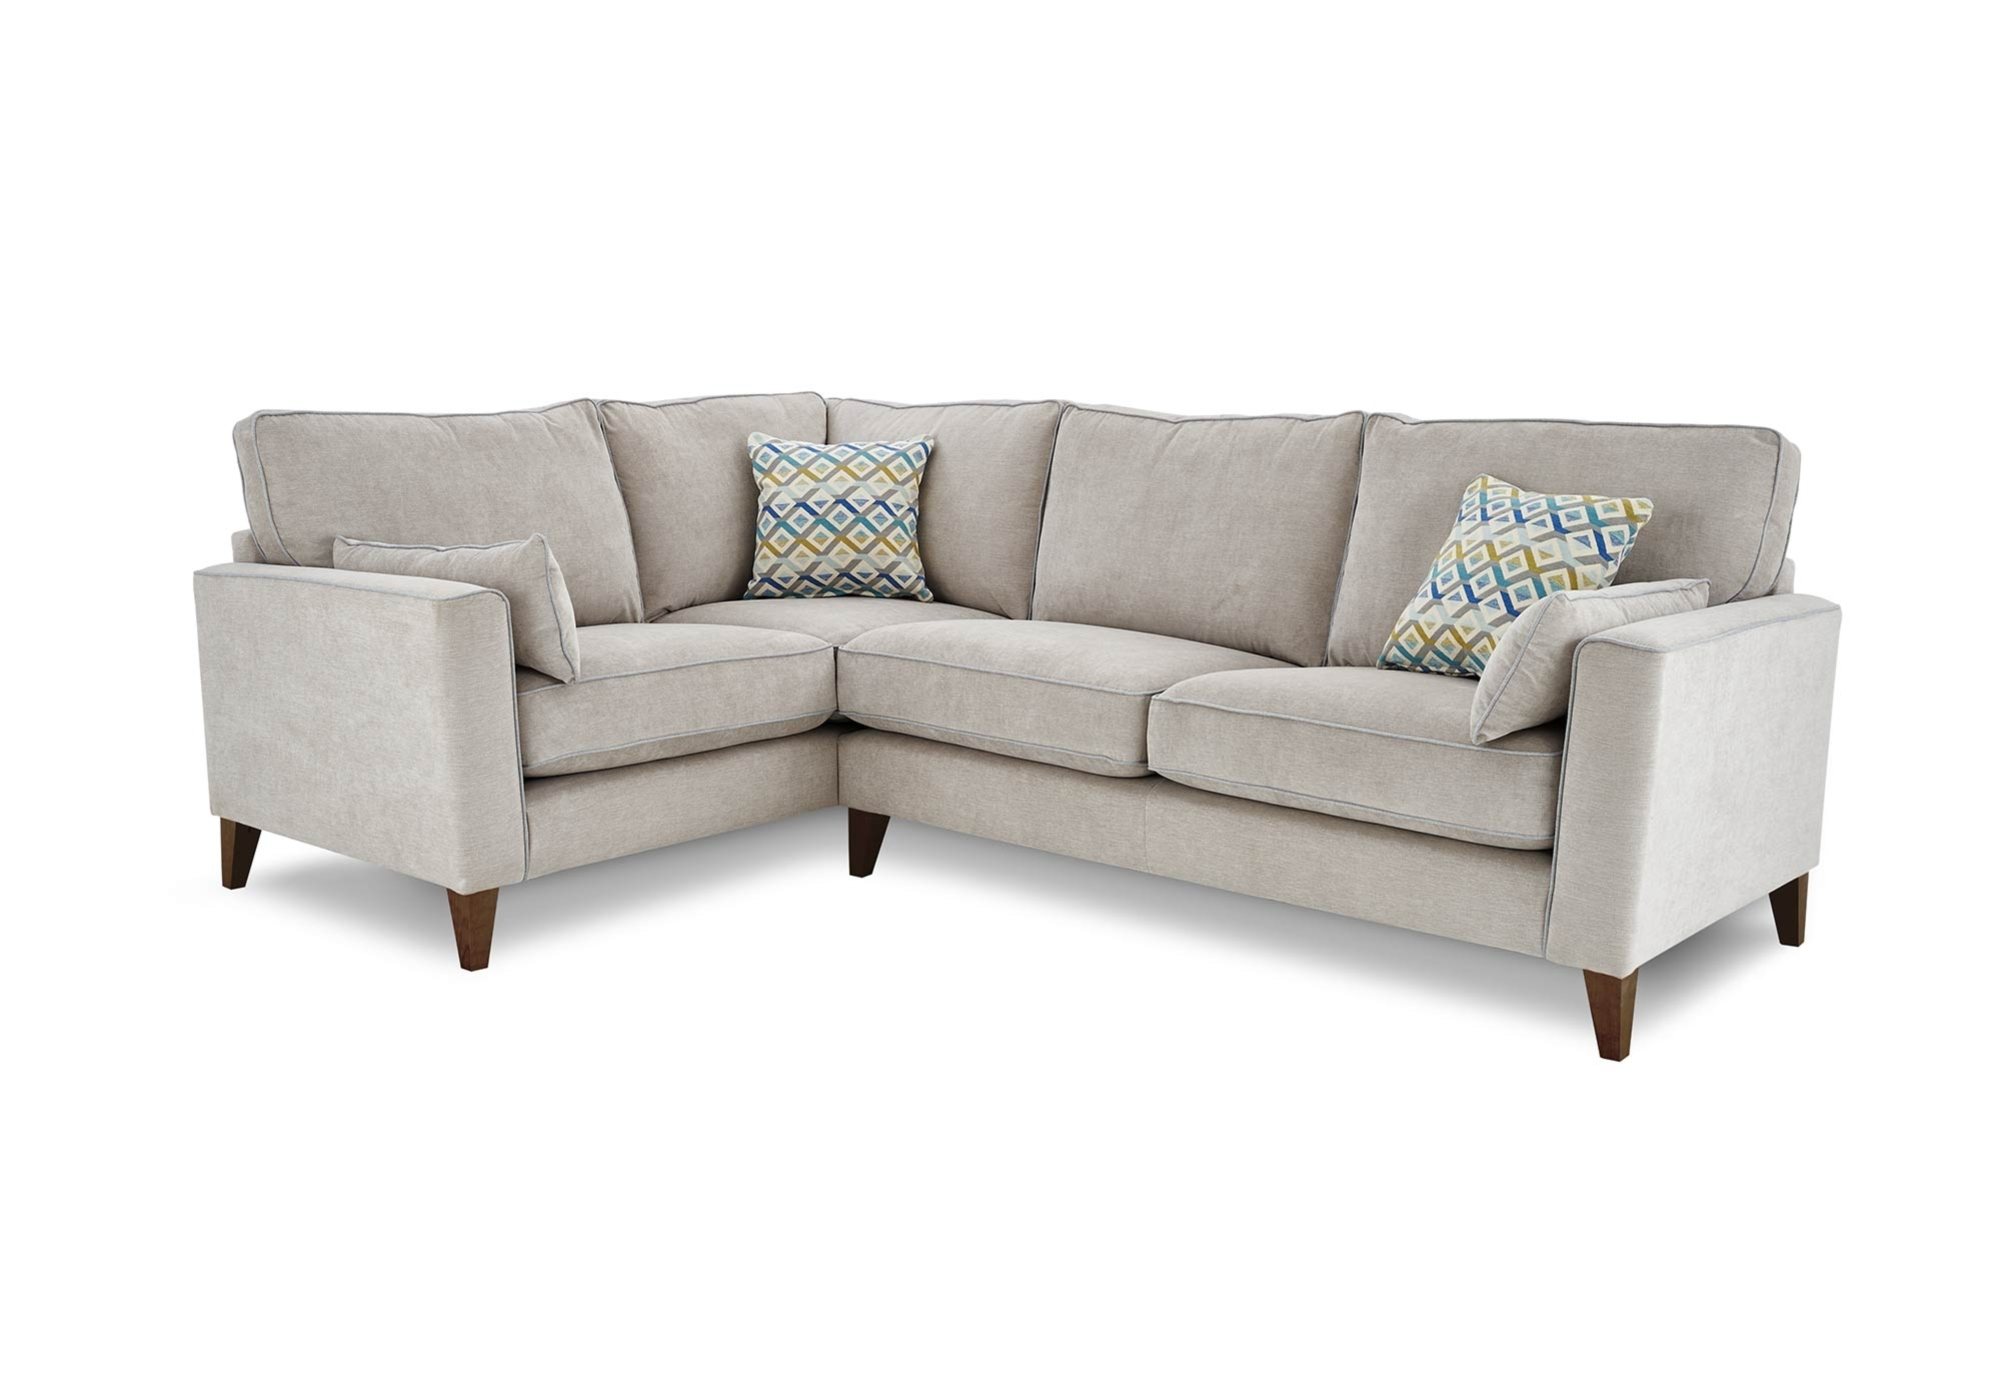 Pin Kayla Howze On Residential Project Pinterest Settees Regarding Corner Sofa Chairs (Image 11 of 15)